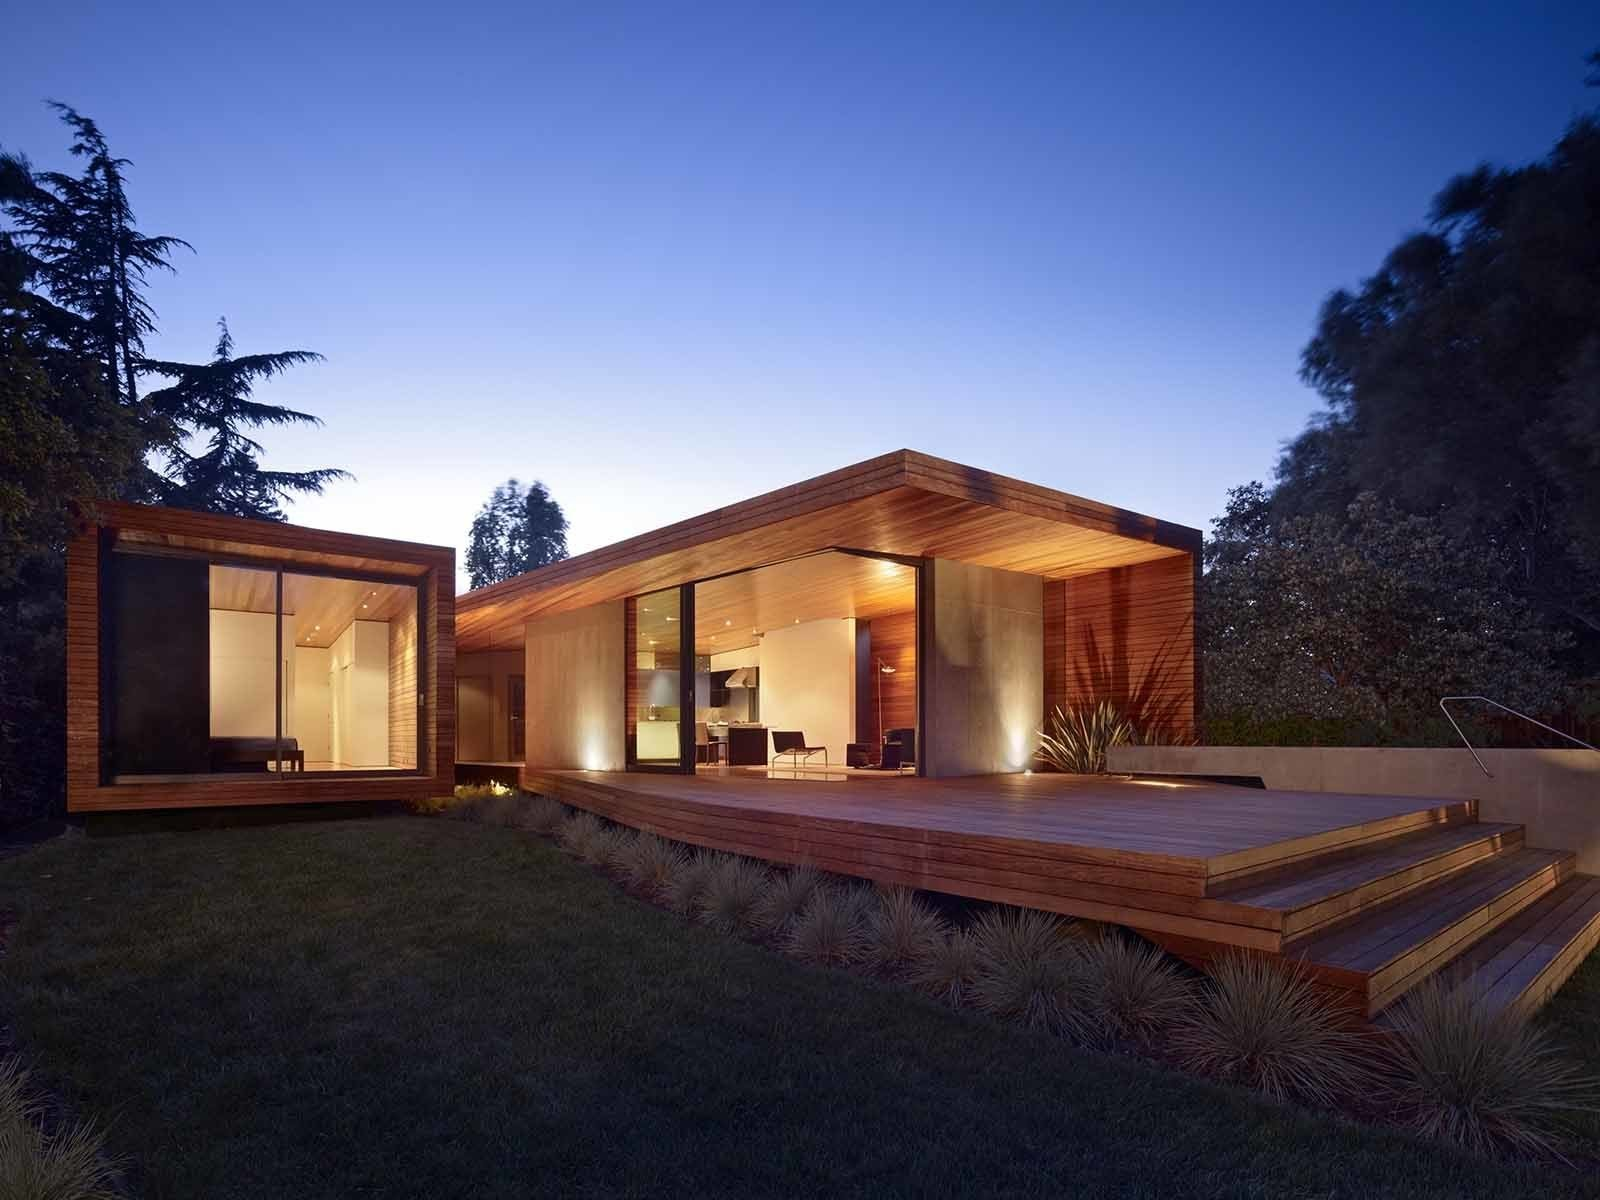 Open and inviting, the addition enables a fluid indoor-outdoor connection that didn't exist before. Tagged: Back Yard, Shrubs, Wood Patio, Porch, Deck, Exterior, House, and Wood Siding Material.  Photo 8 of 8 in An Indoor-Outdoor Renovation for a 1950s Ranch House in the Bay Area from 1950s Ranch